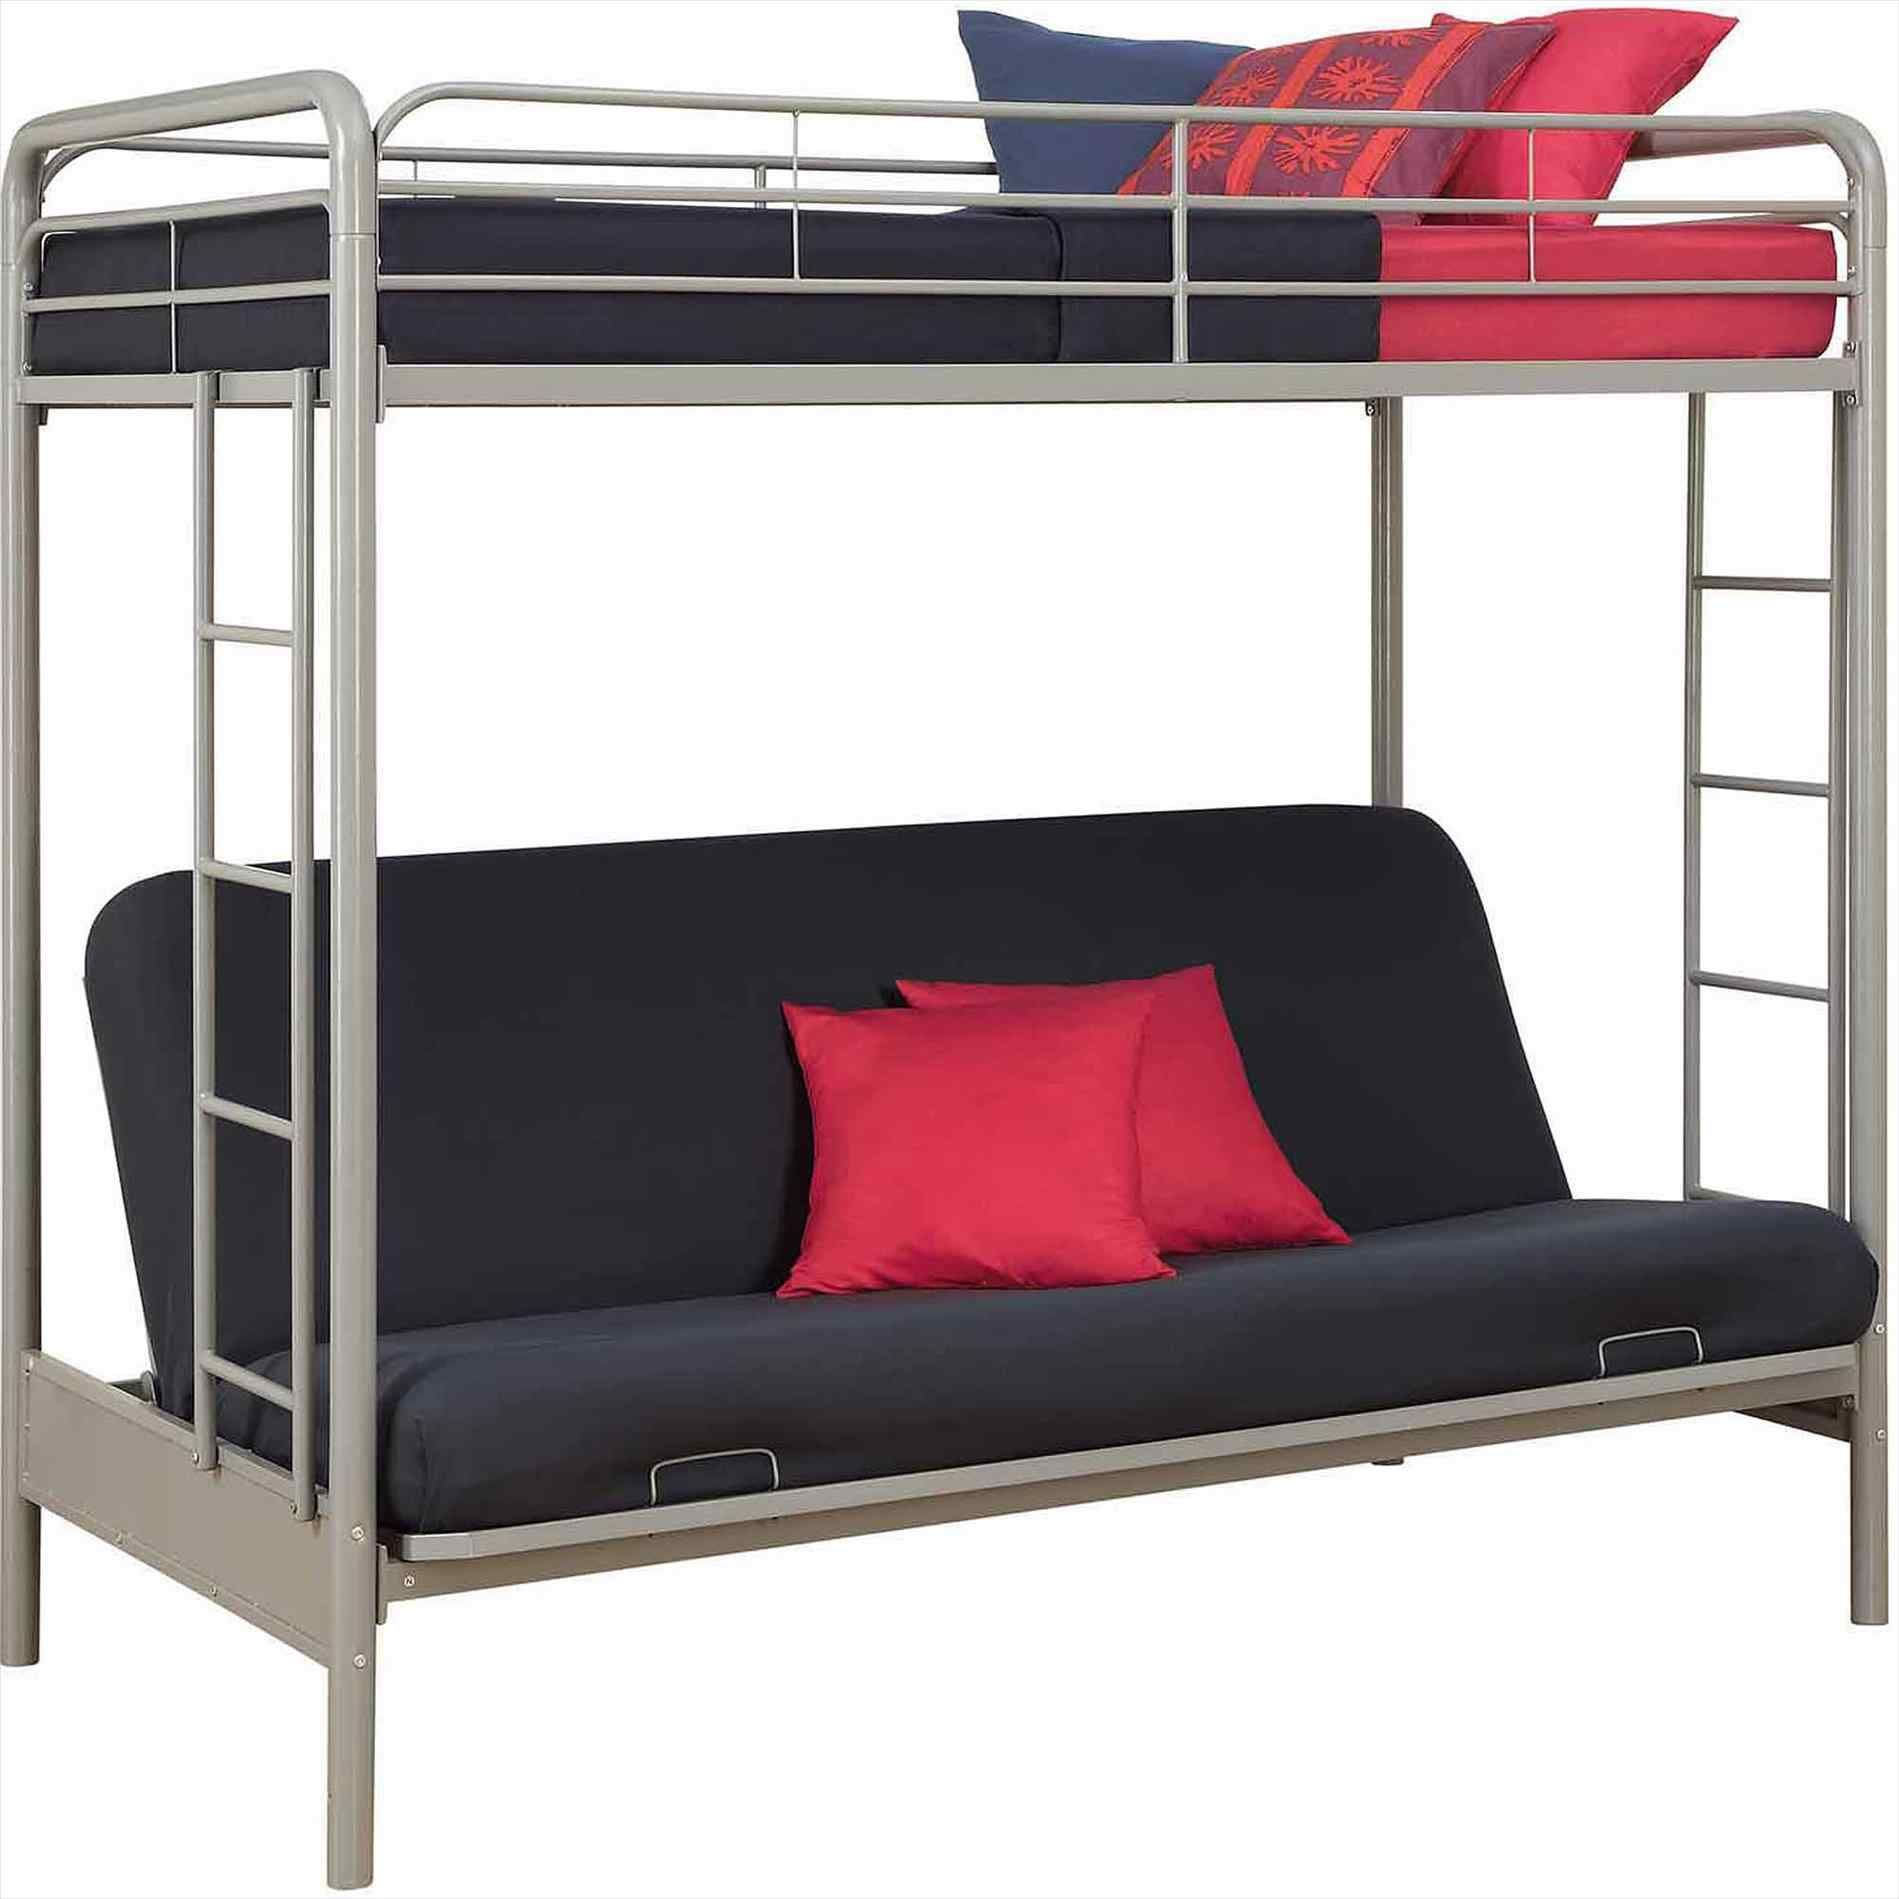 Futon Bunk Beds For Adults Bunk Bed With Double Futon Underneath